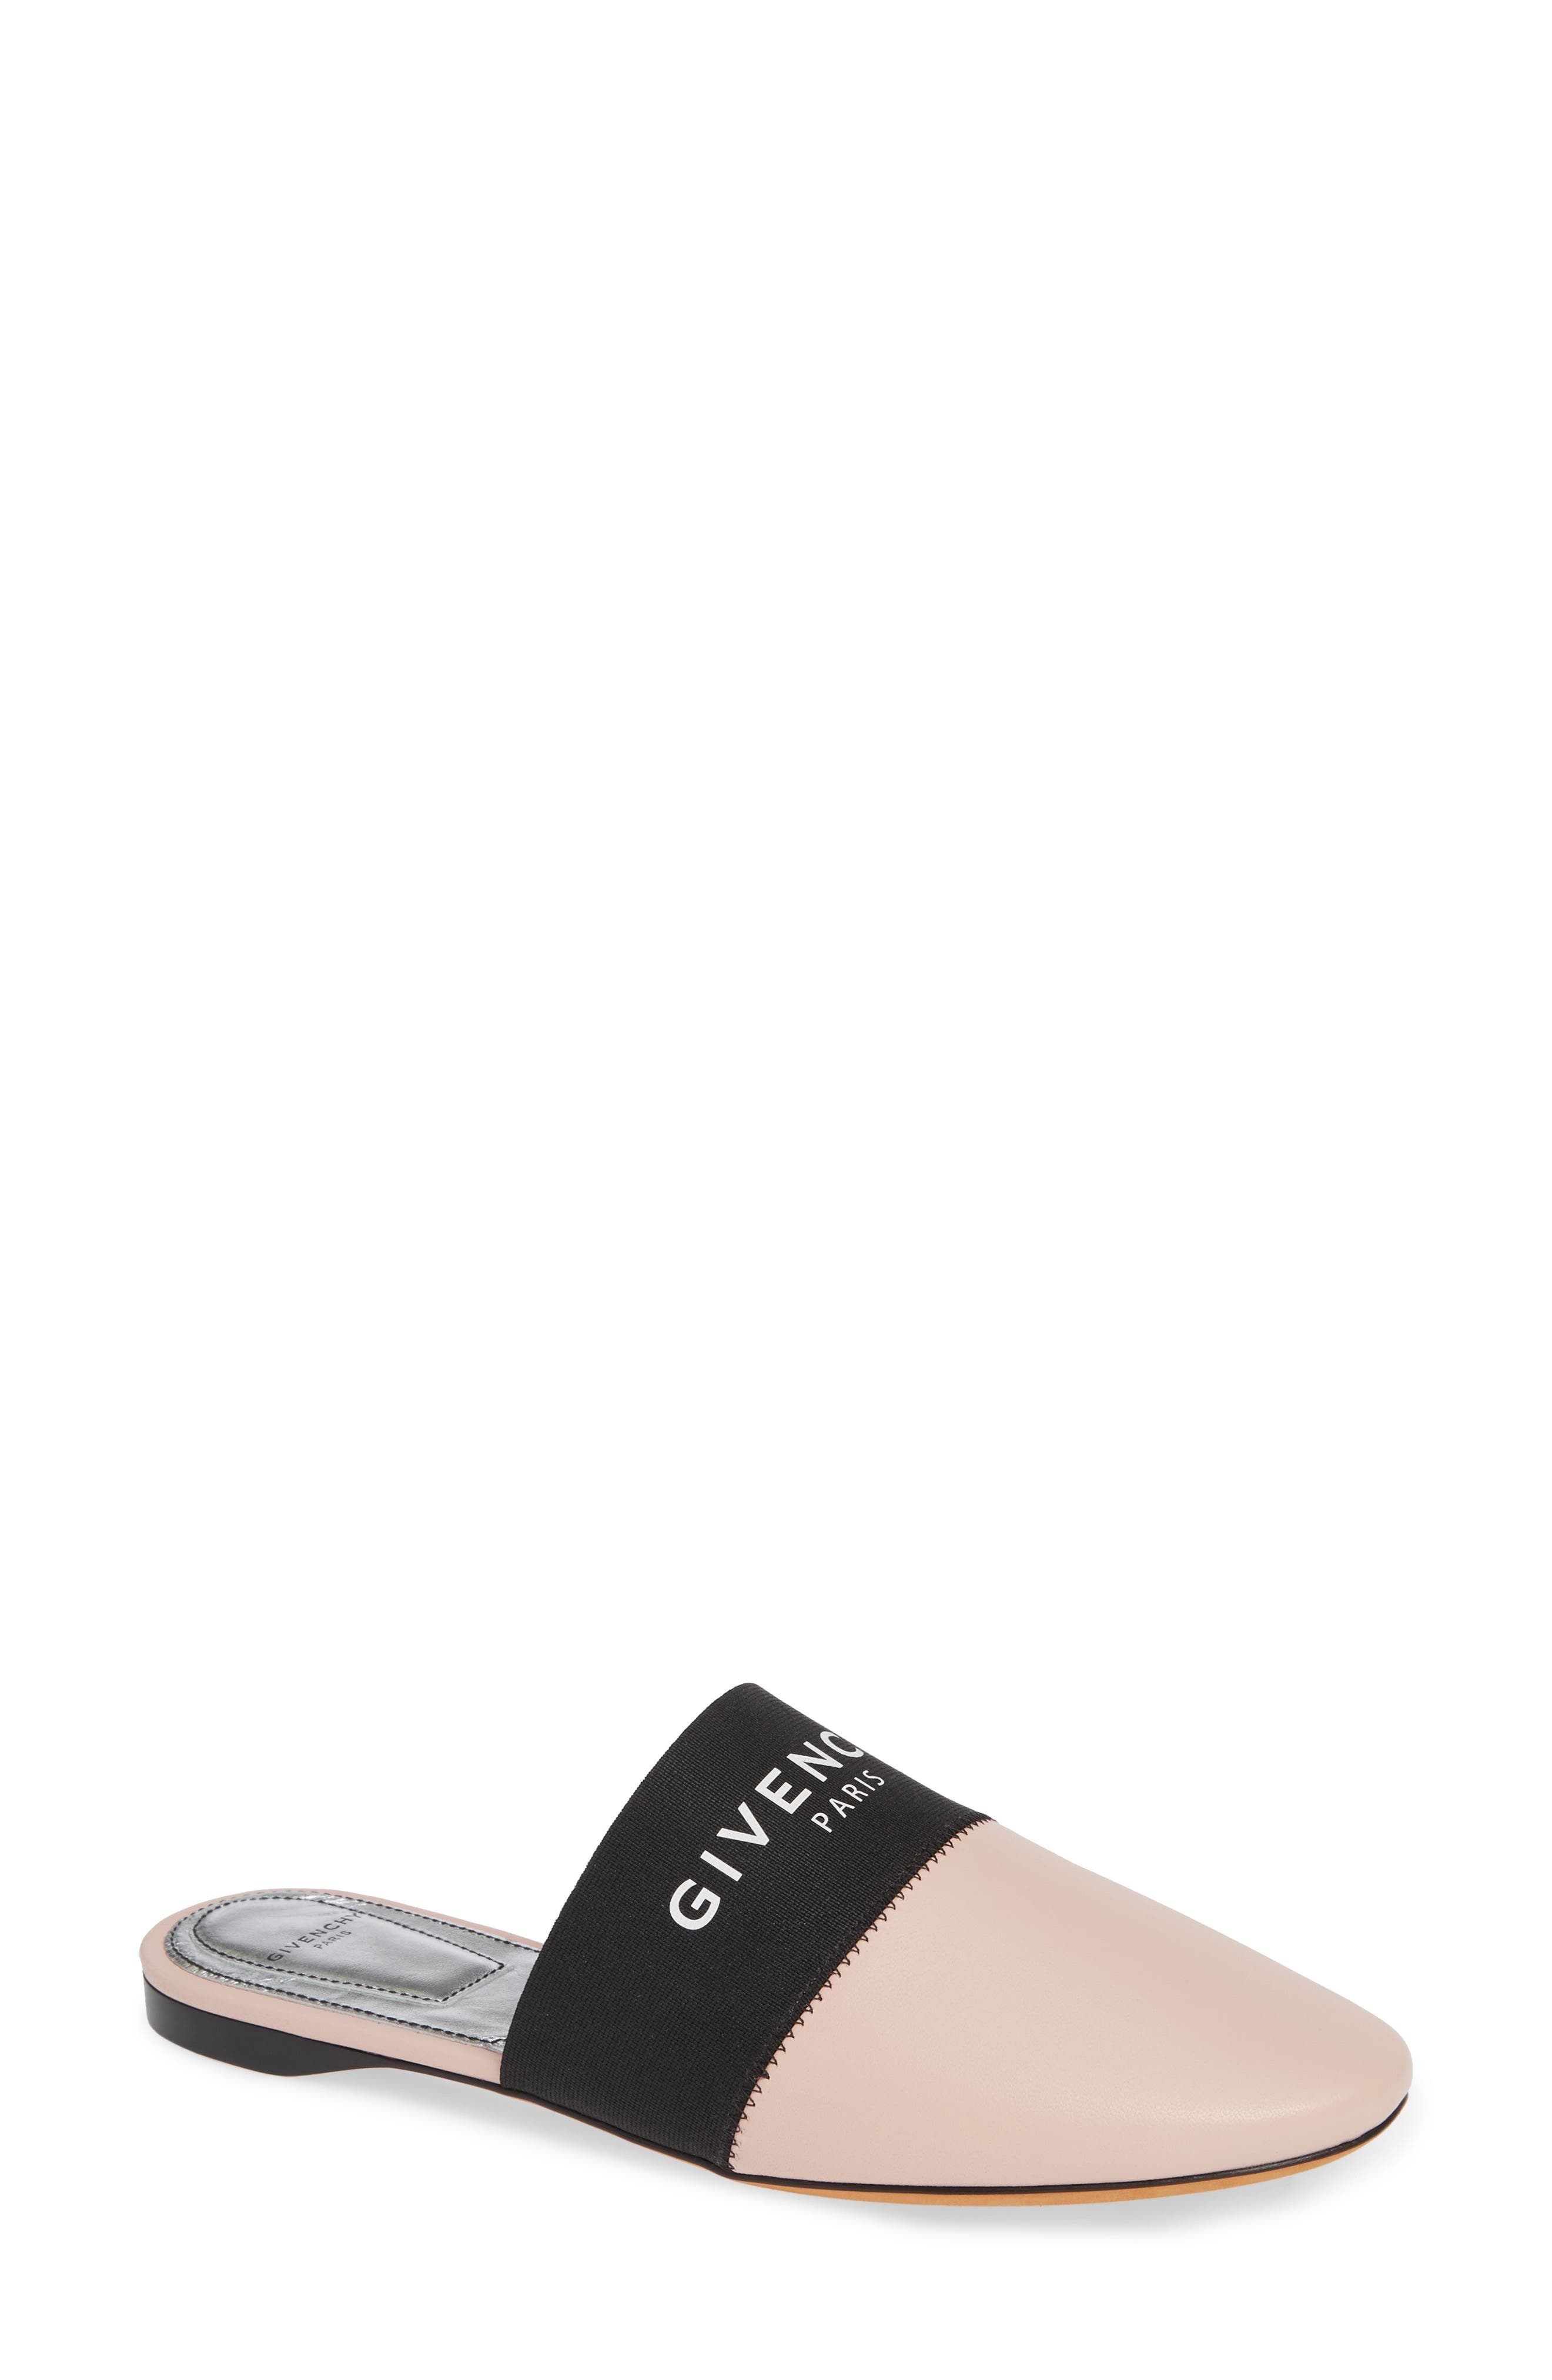 Givenchy Bedford Logo Mule, Pink